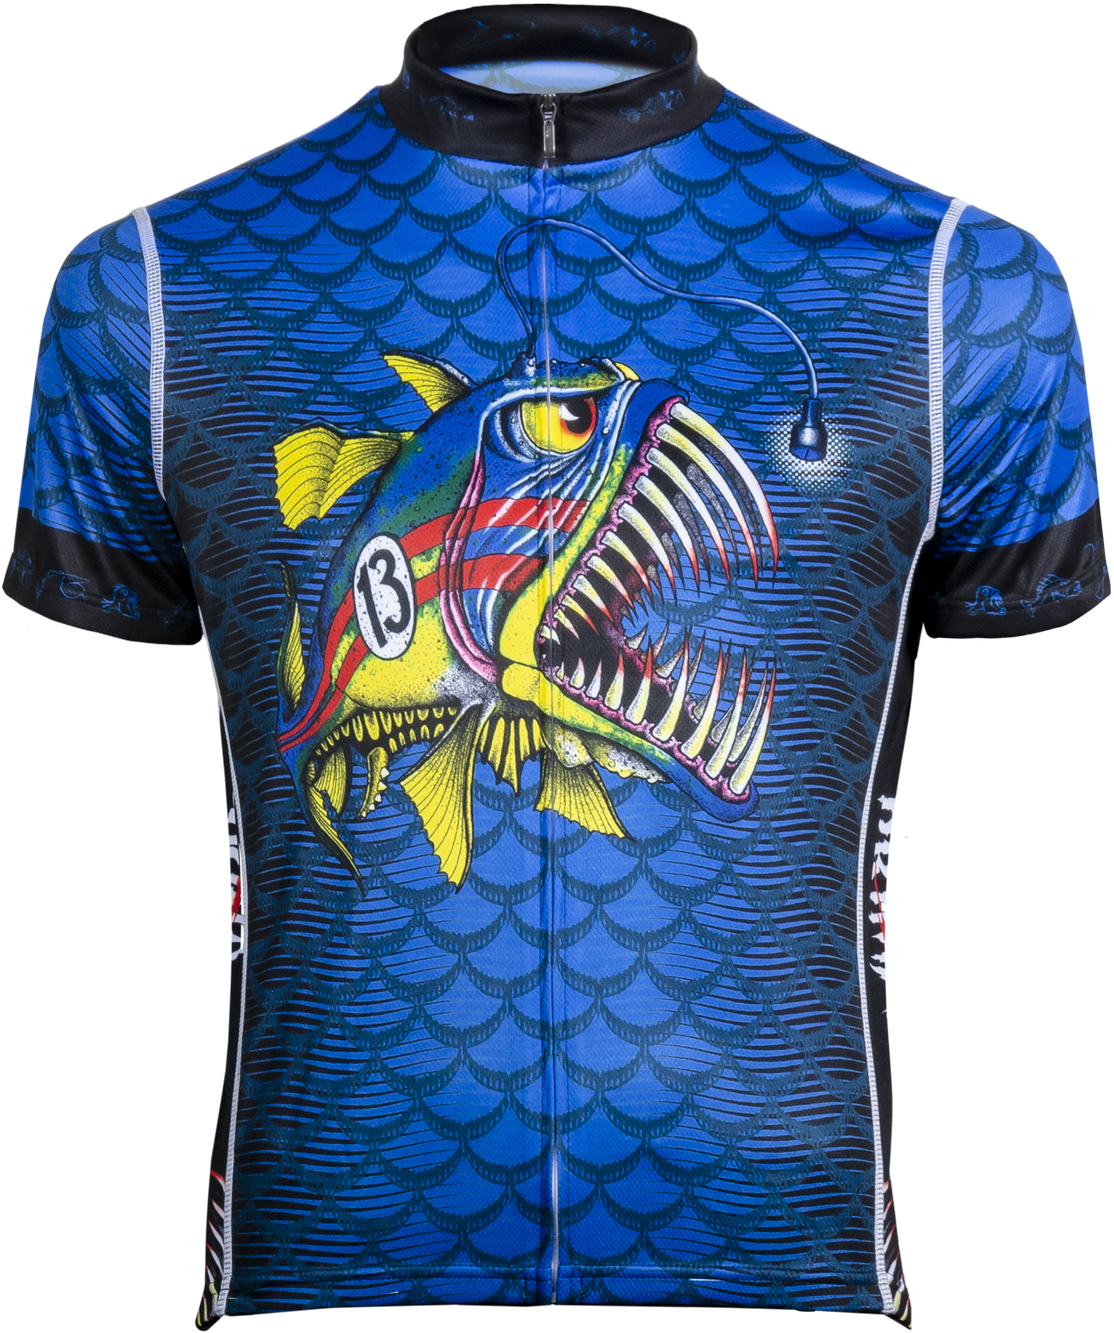 Primal Fishious Cycle Sport Cut Jersey | Trøjer